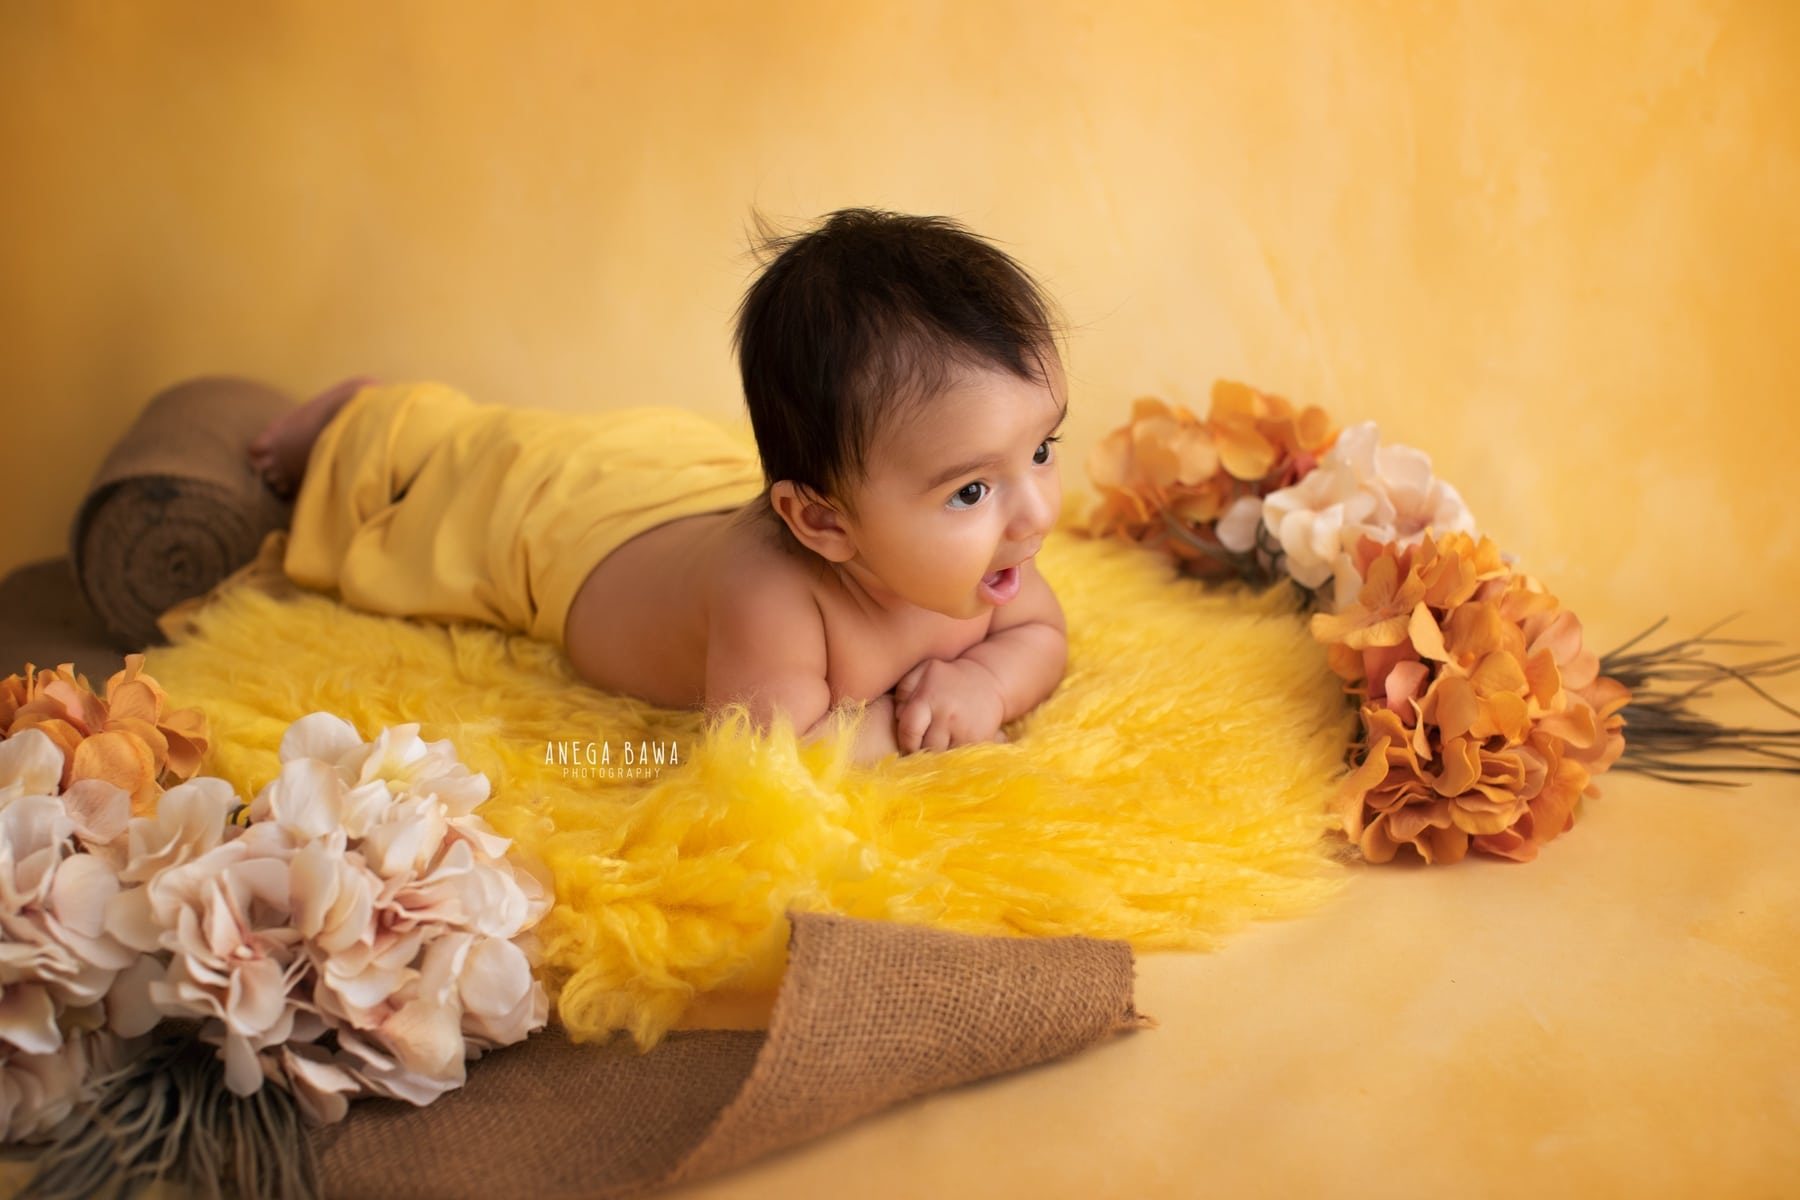 yellow floral baby photography delhi 3 months baby boy photoshoot gurgaon anega bawa